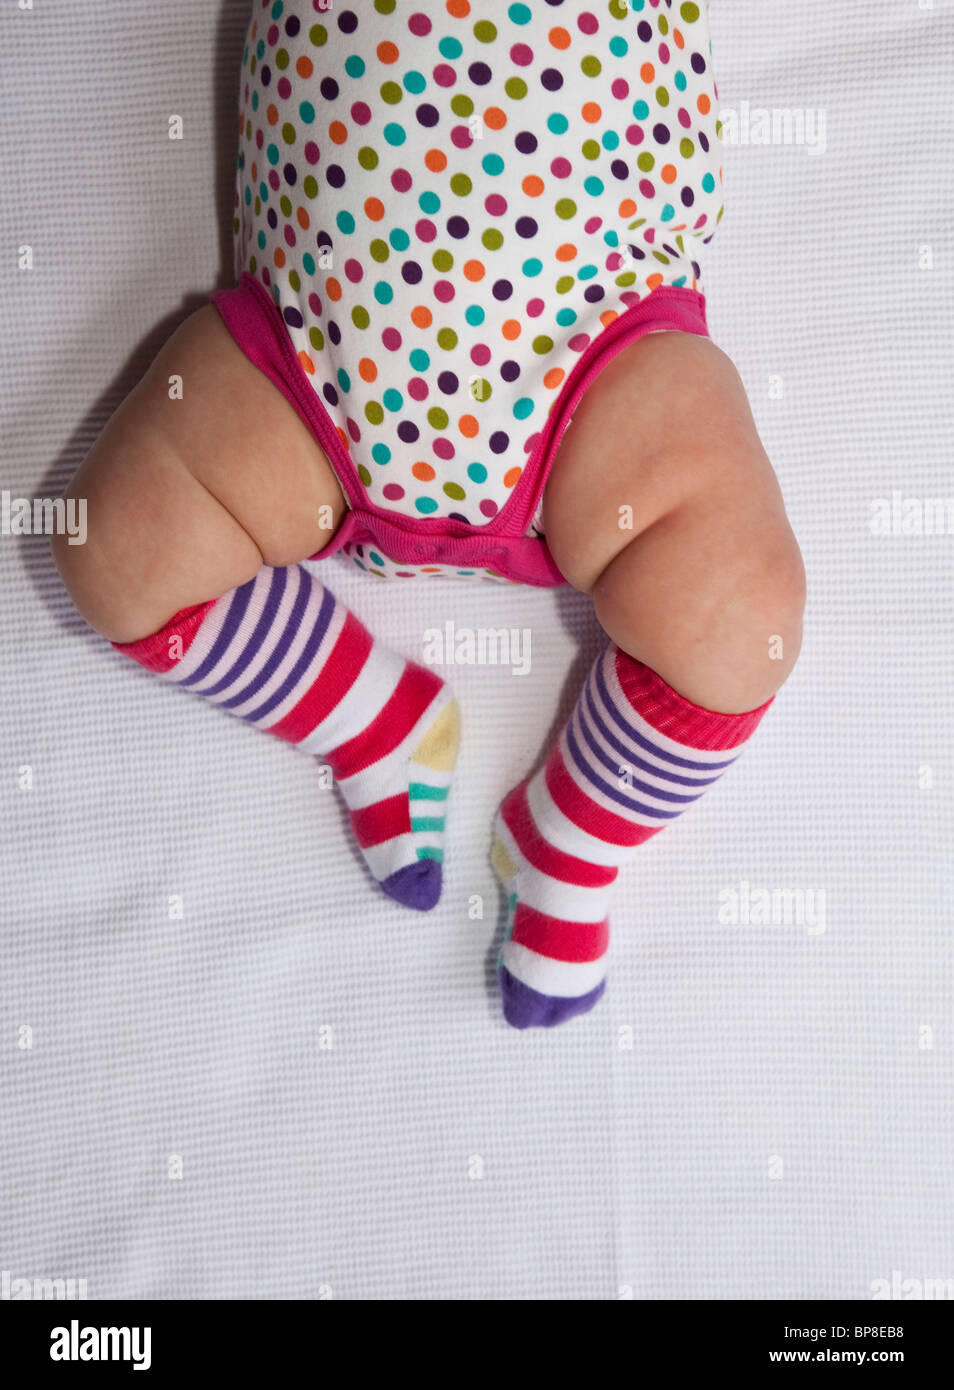 Baby girl with chubby thighs - Stock Image